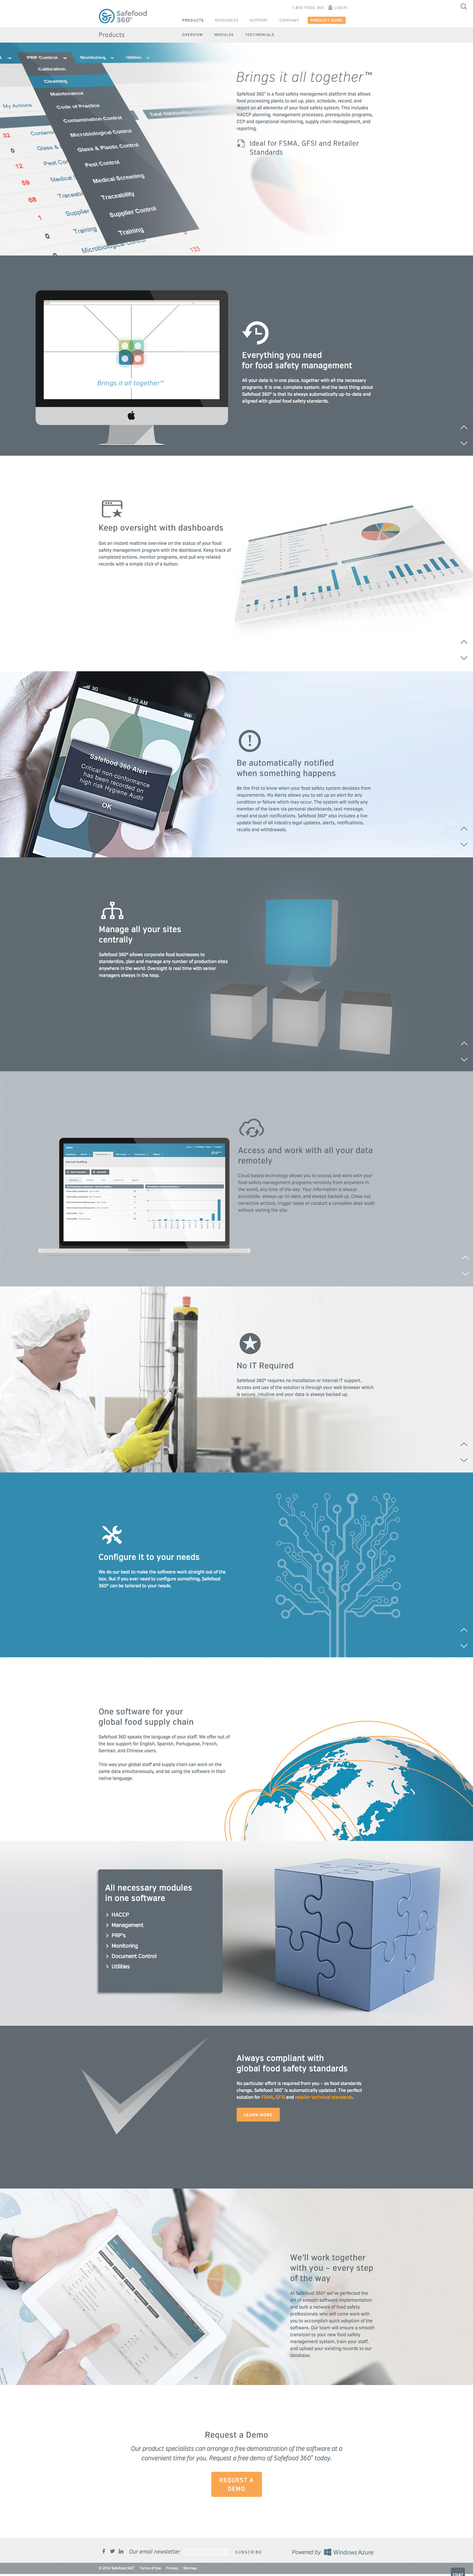 Safefood CMS Web Design product page